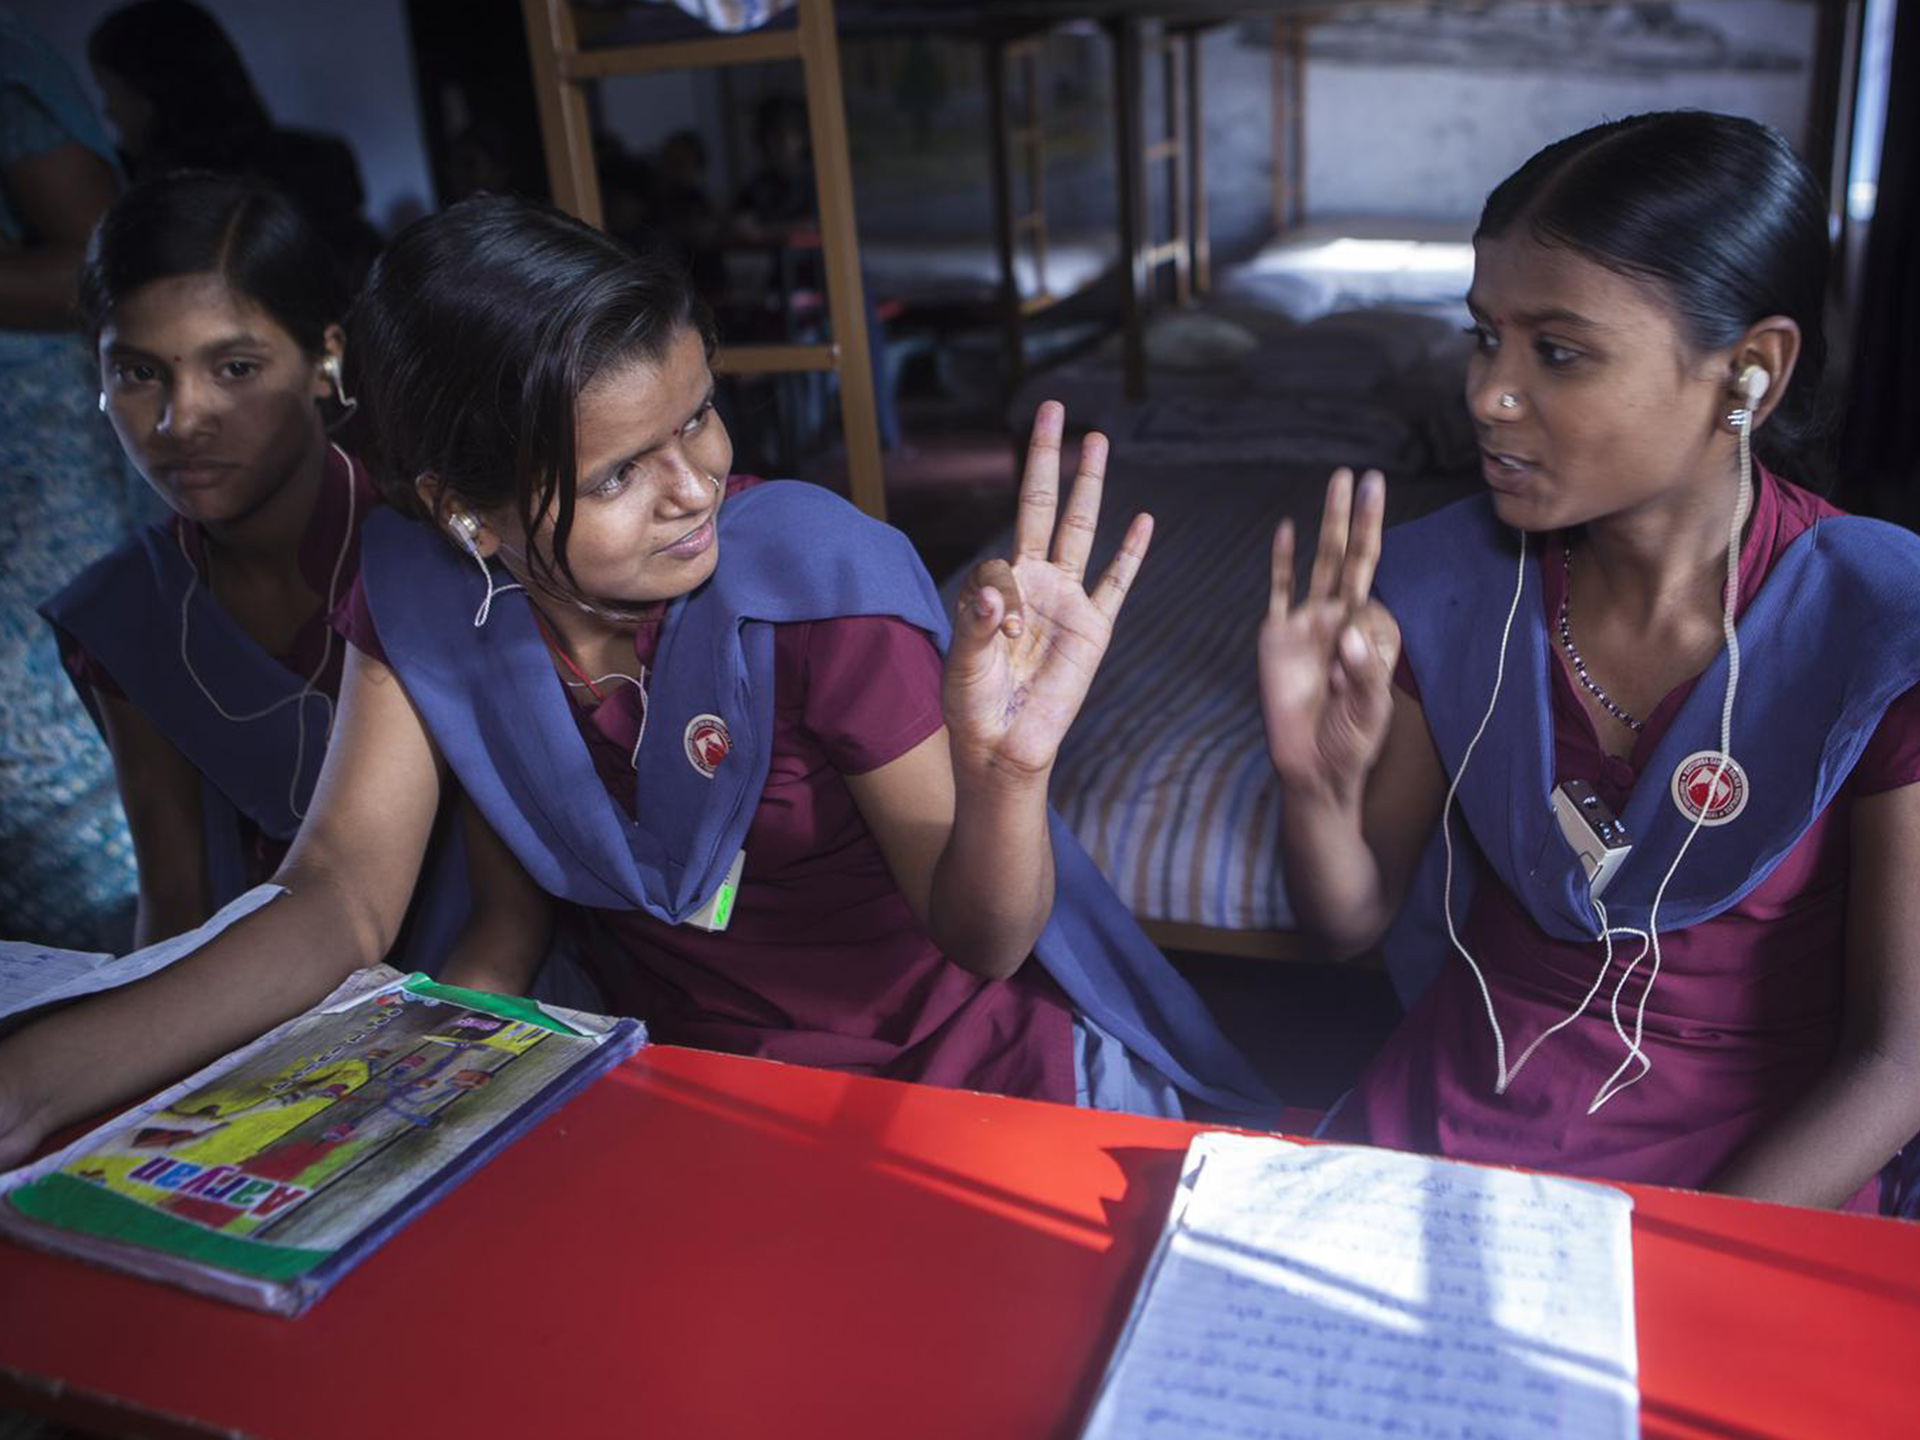 Gender and inclusive education